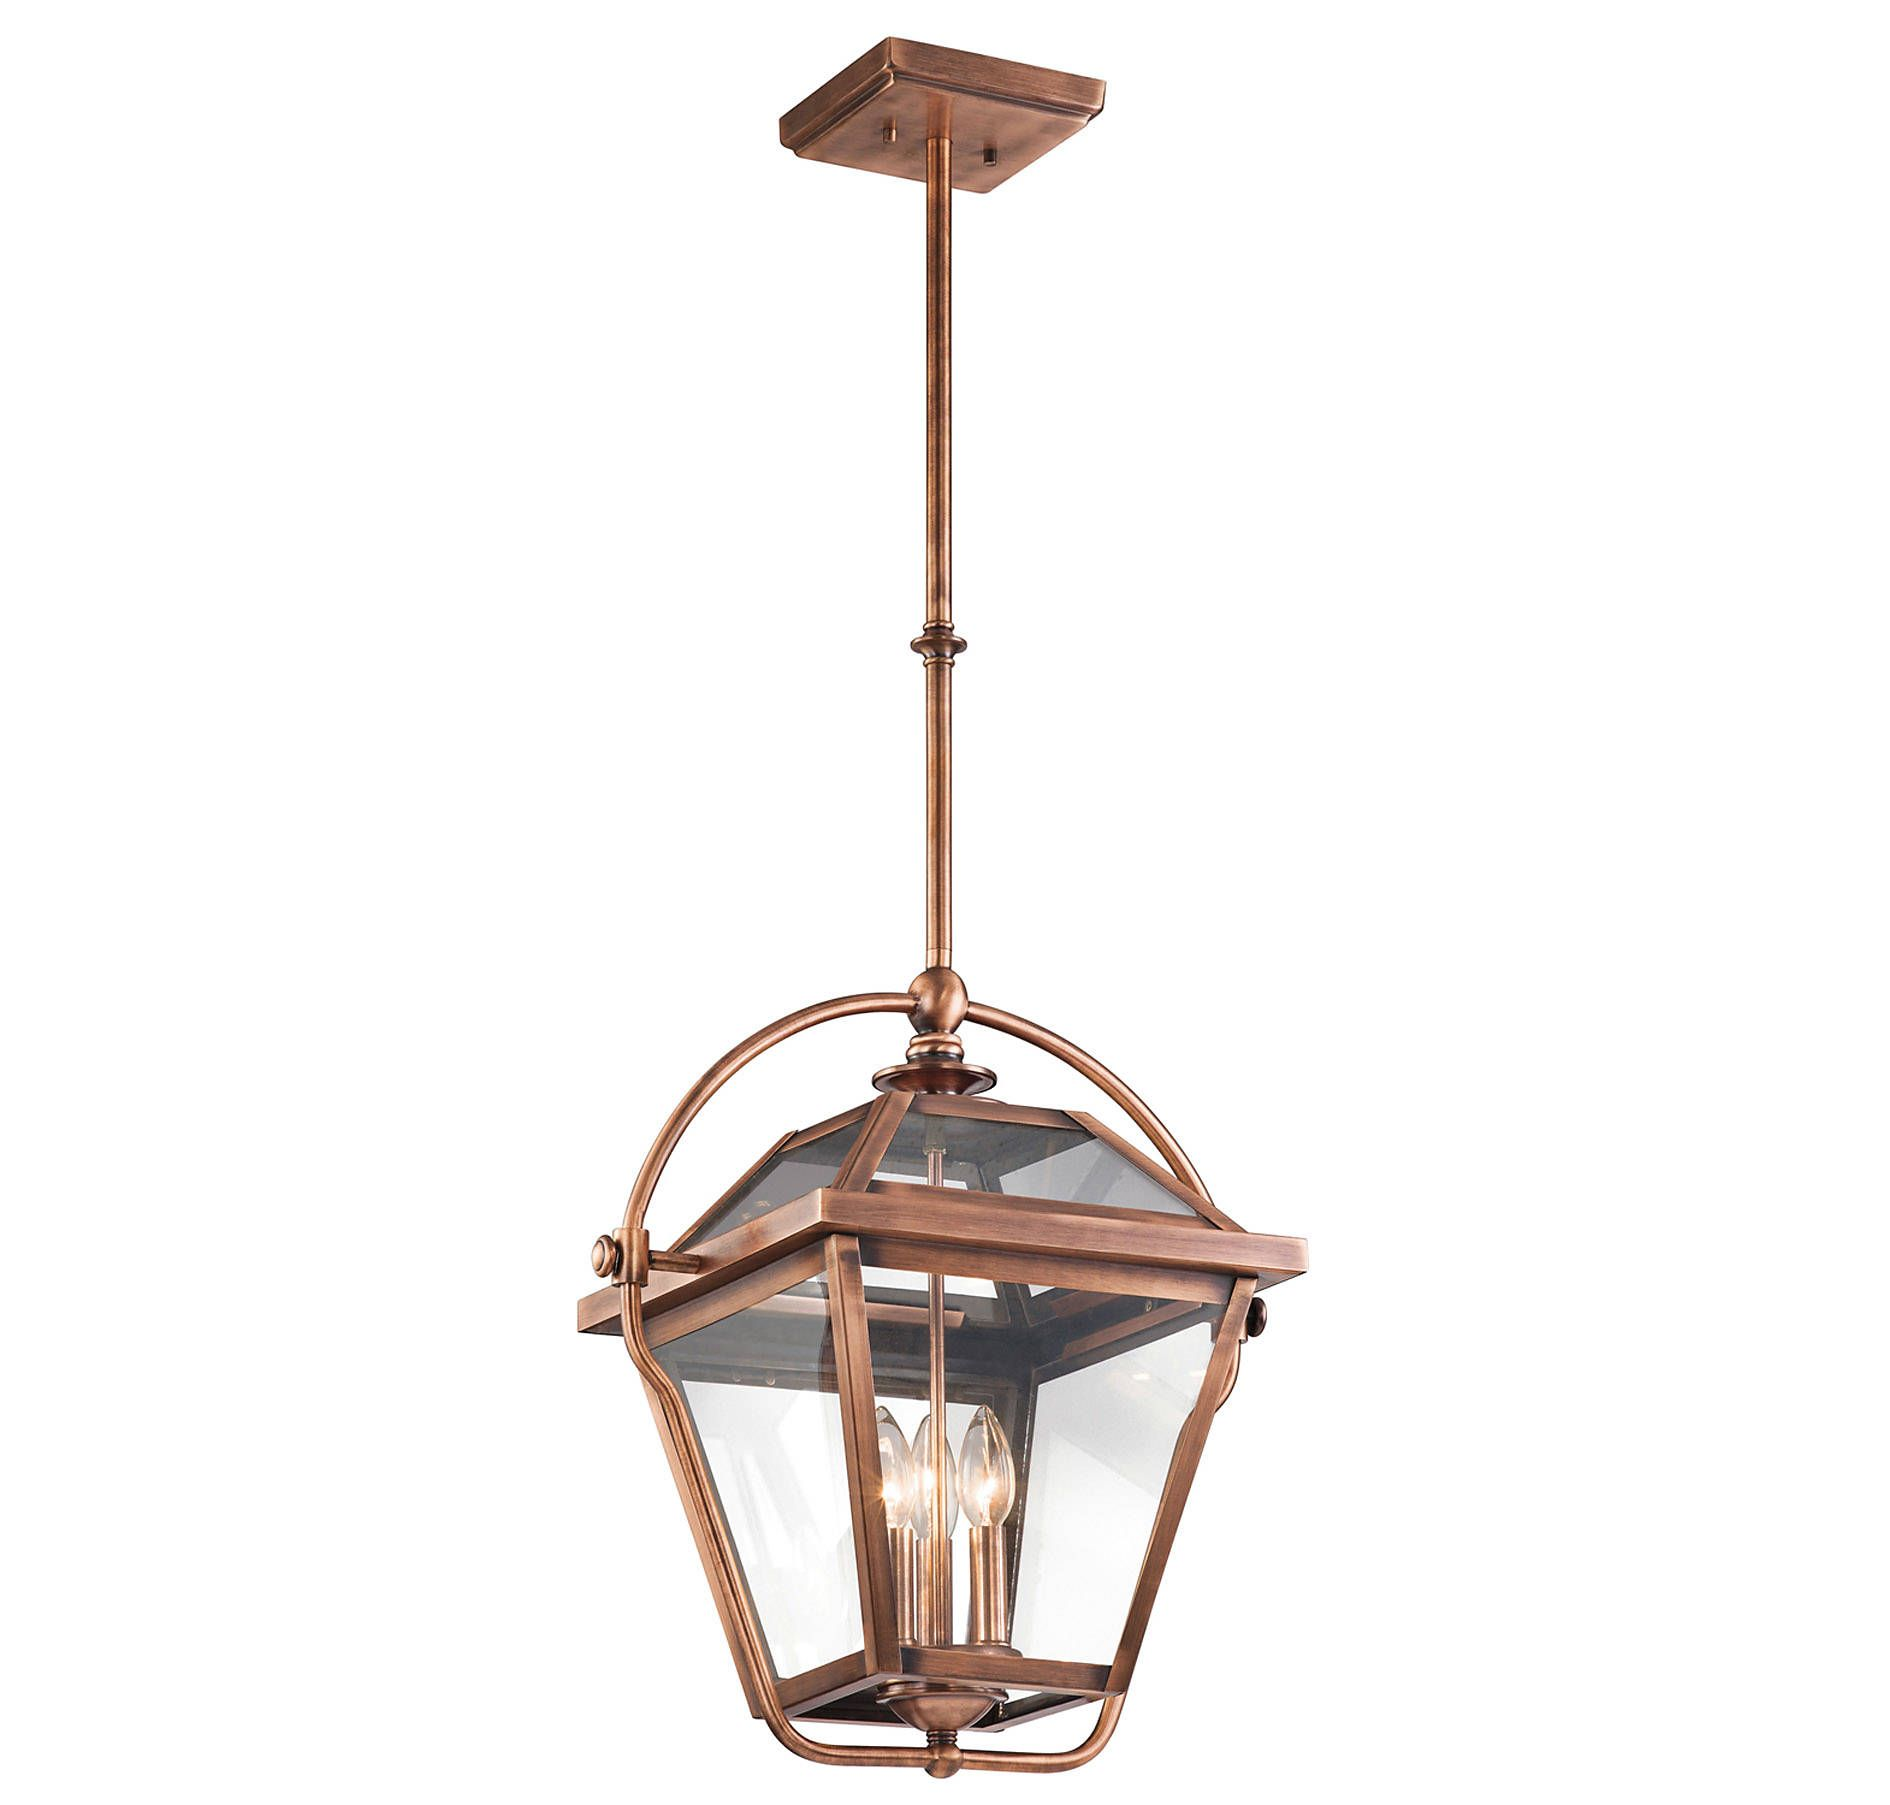 Kichler 42909aco Ryegate 3 Light Pendant In Antique Copper In Ceiling Lights Chandeliers Indoor Ch Copper Pendant Lights Copper Light Fixture Copper Lighting